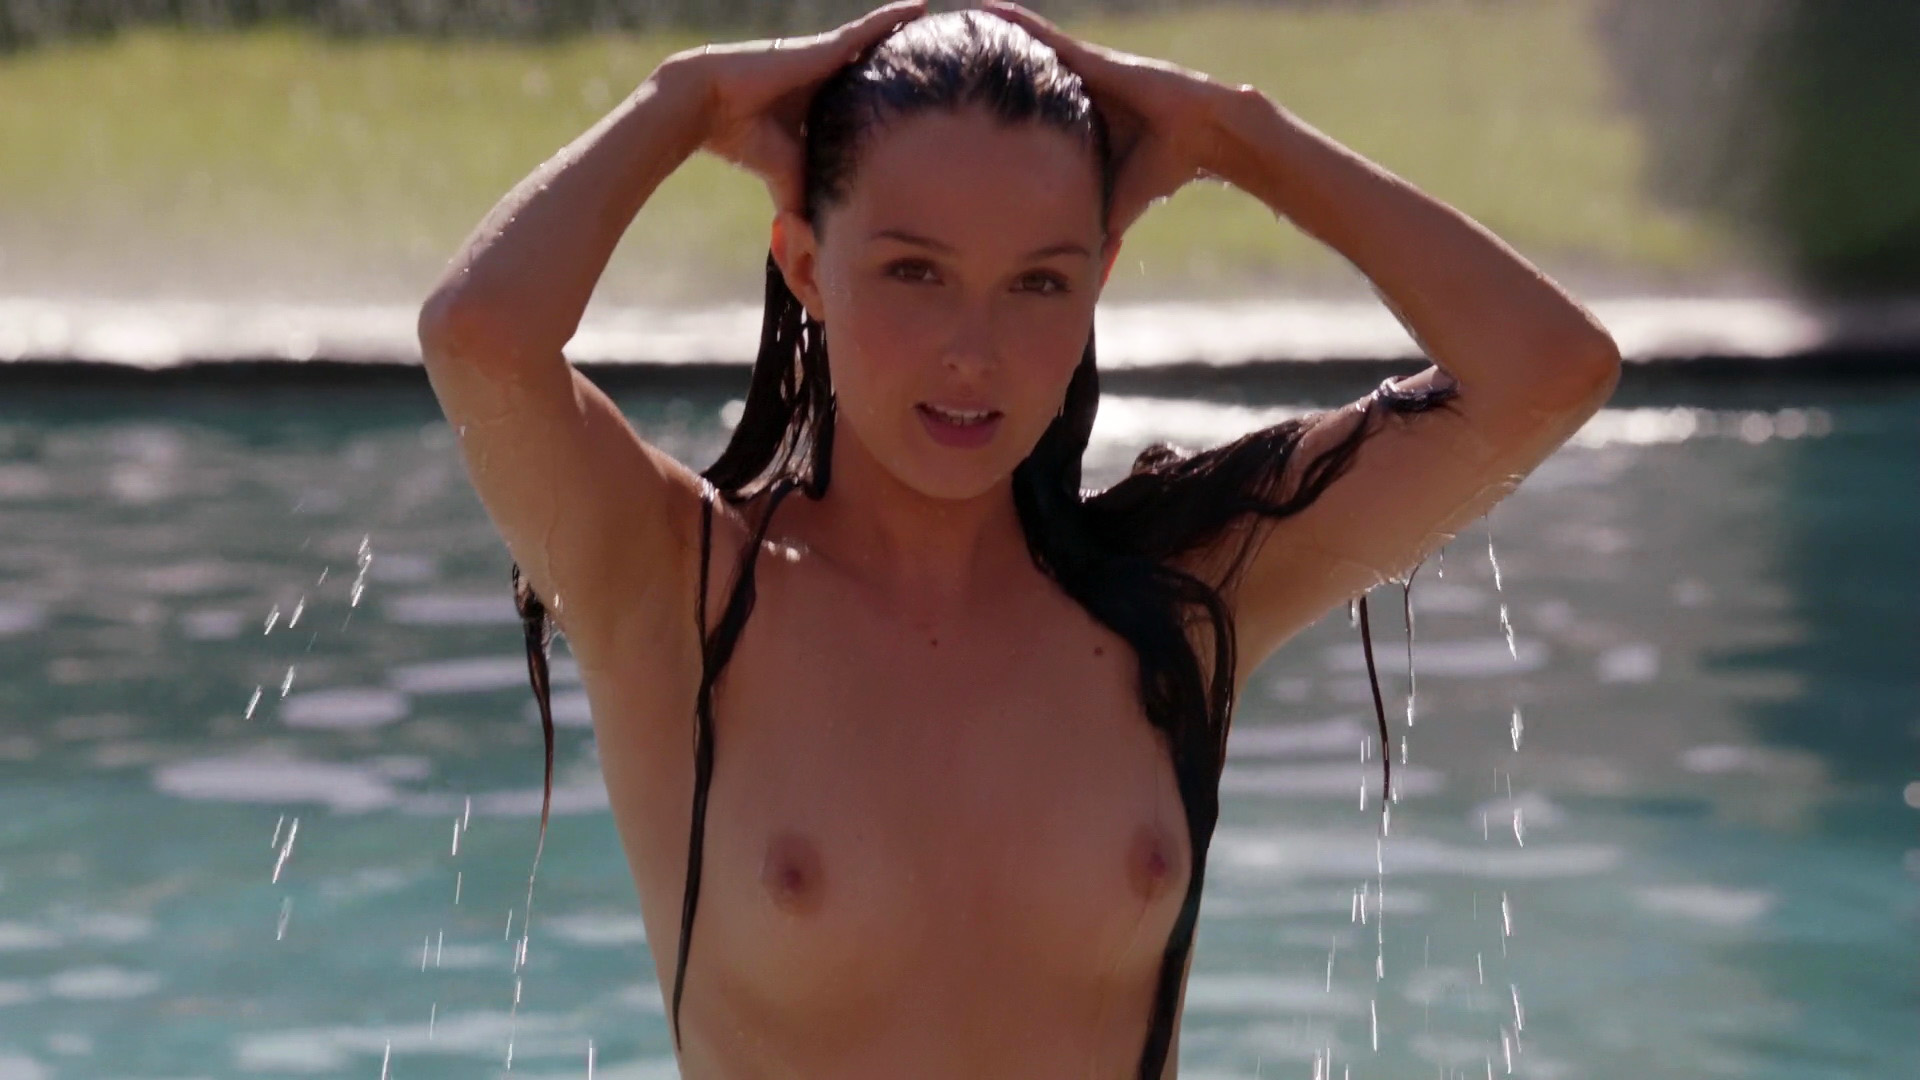 Camilla Luddington – Californication s05 (2012) HD 1080p